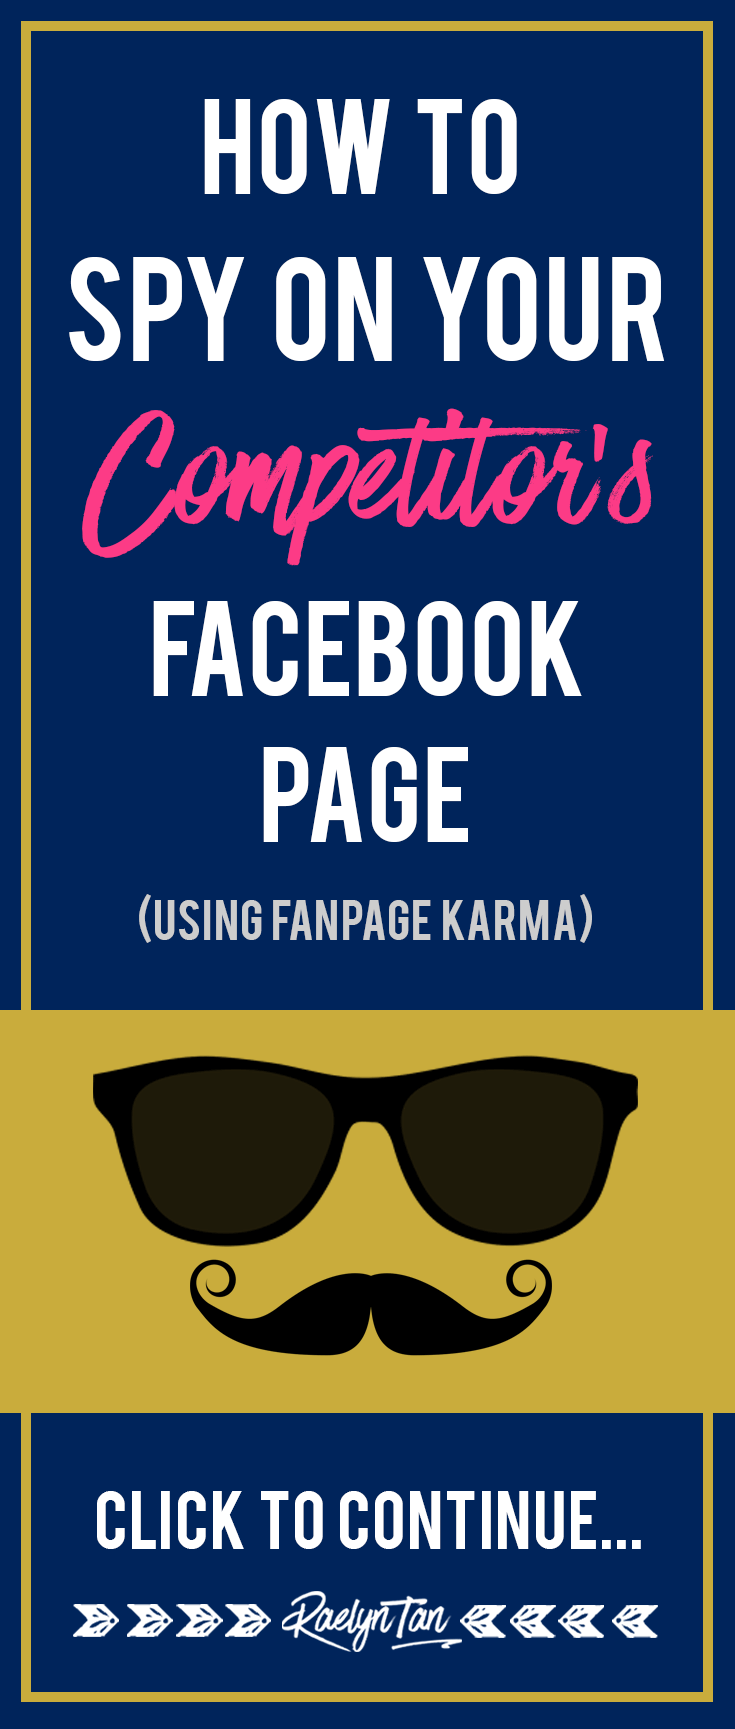 Value-packed Fan Page Karma Tutorial: Use Fan Page Karma to find out what's working best on your competitor's Facebook page & and up-level your marketing + business on Facebook.